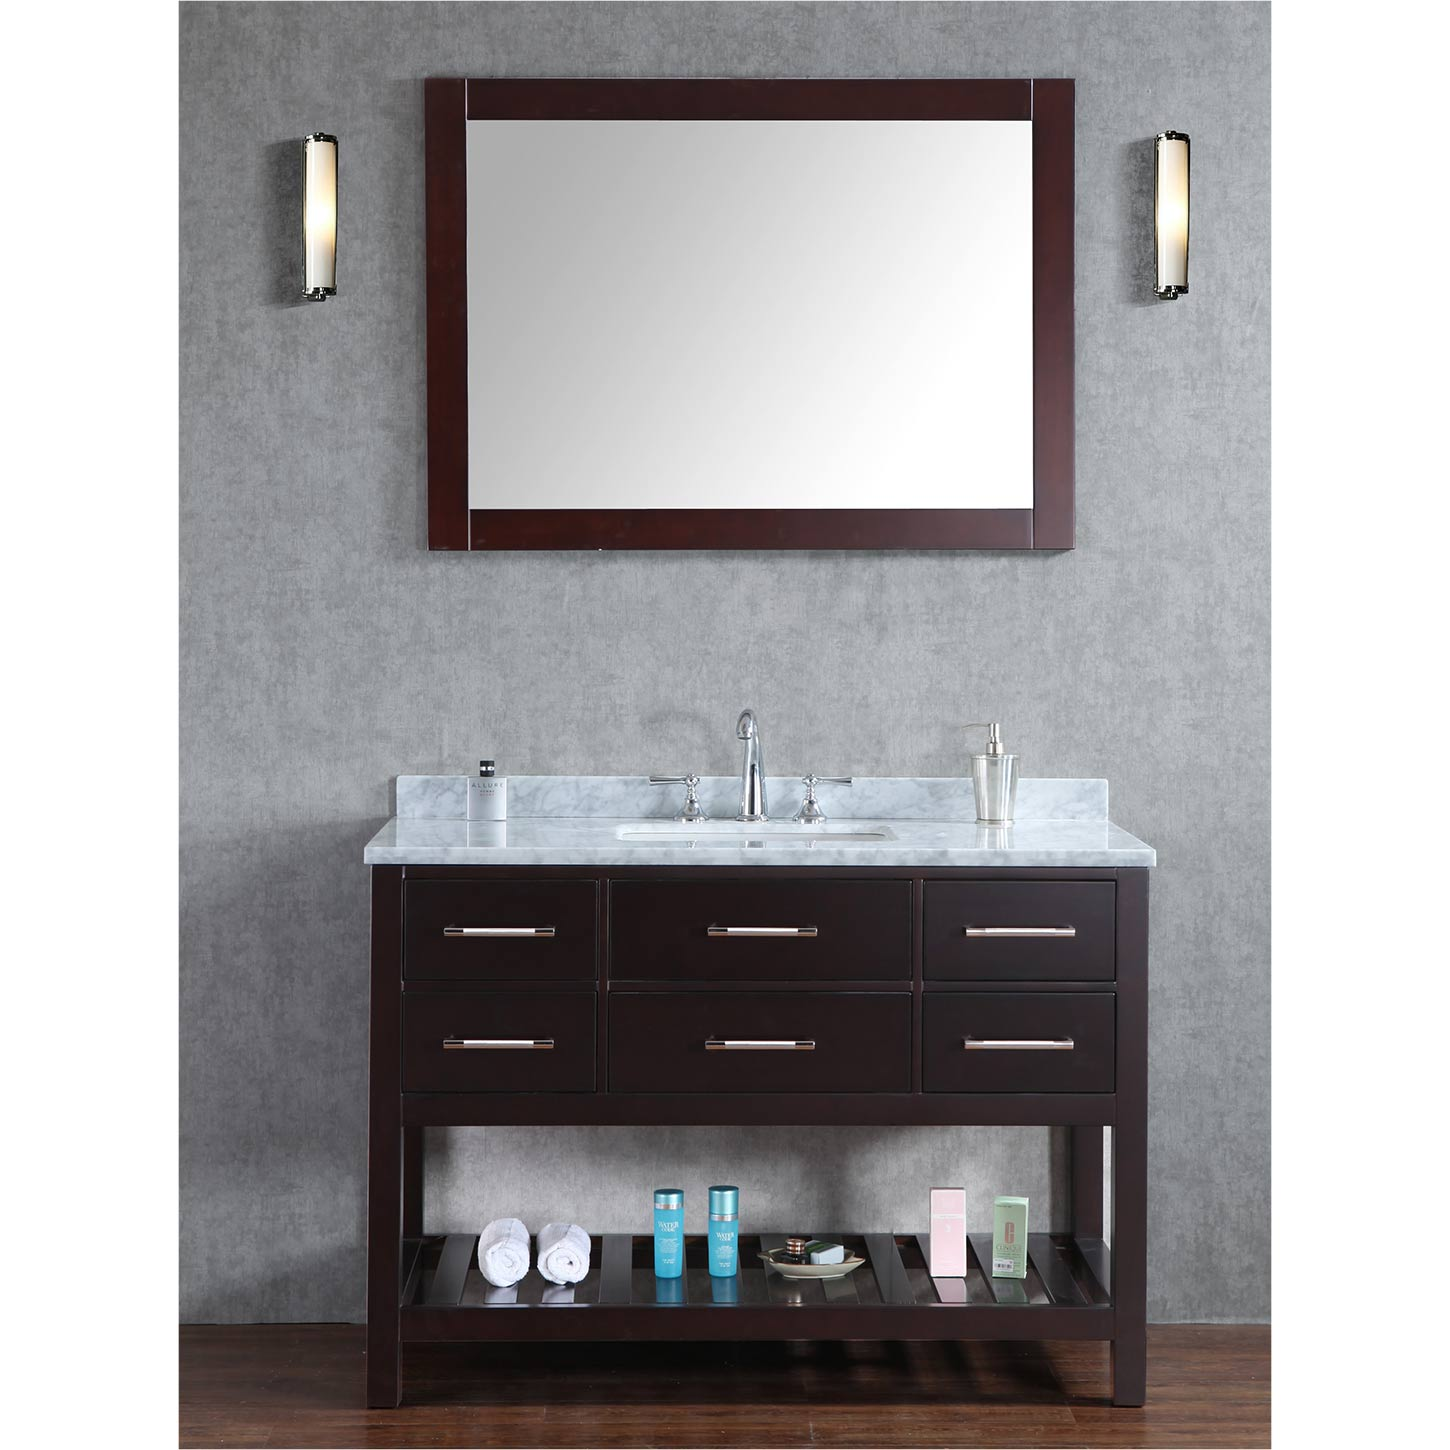 Bathroom Cabinets 48 Inch buy antonia 48 inch solid wood single bathroom vanity in espresso